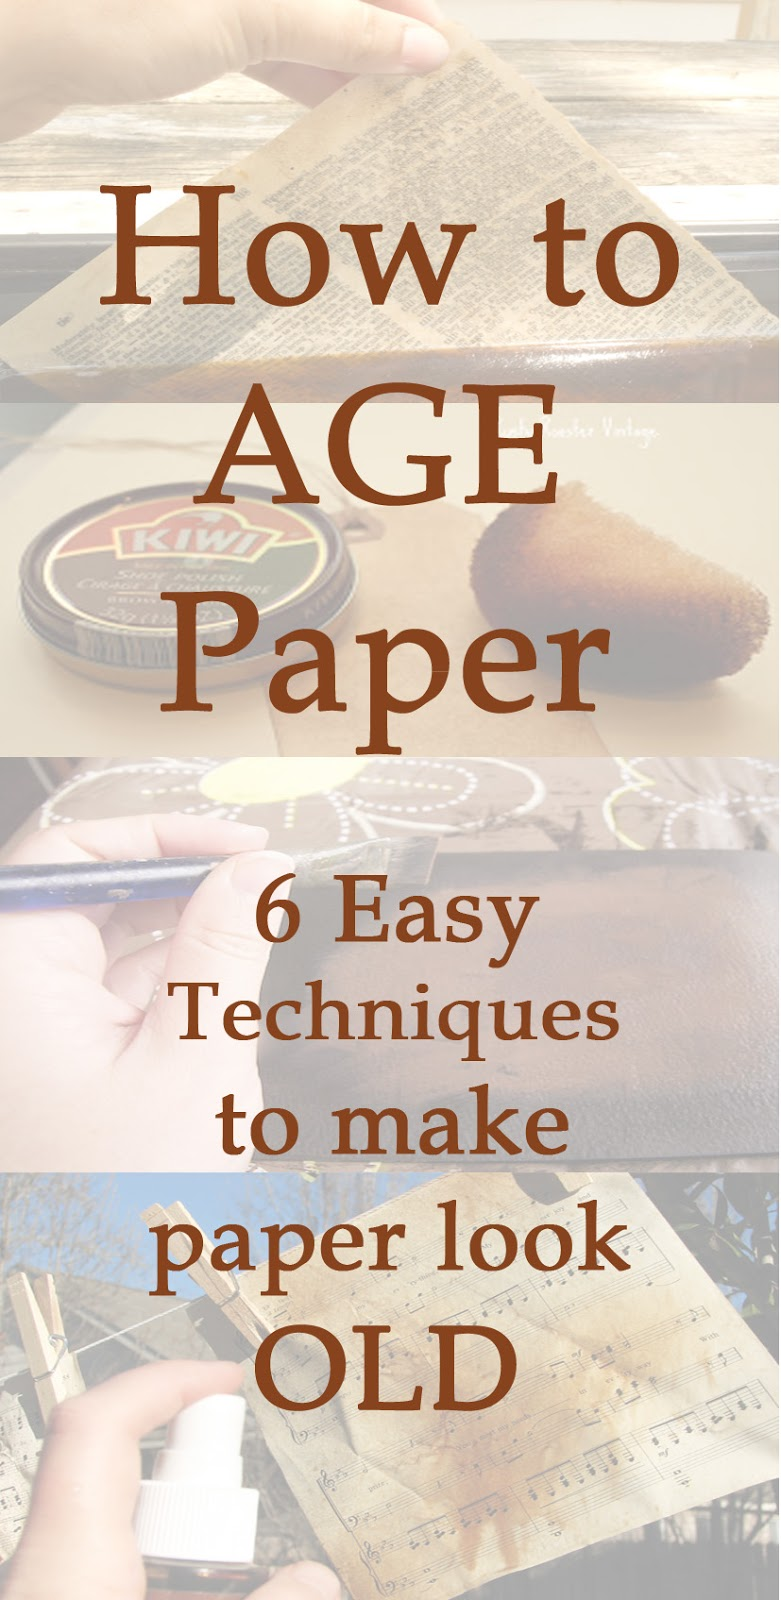 How to Age Paper 6 easy technique to make paper look old Einat